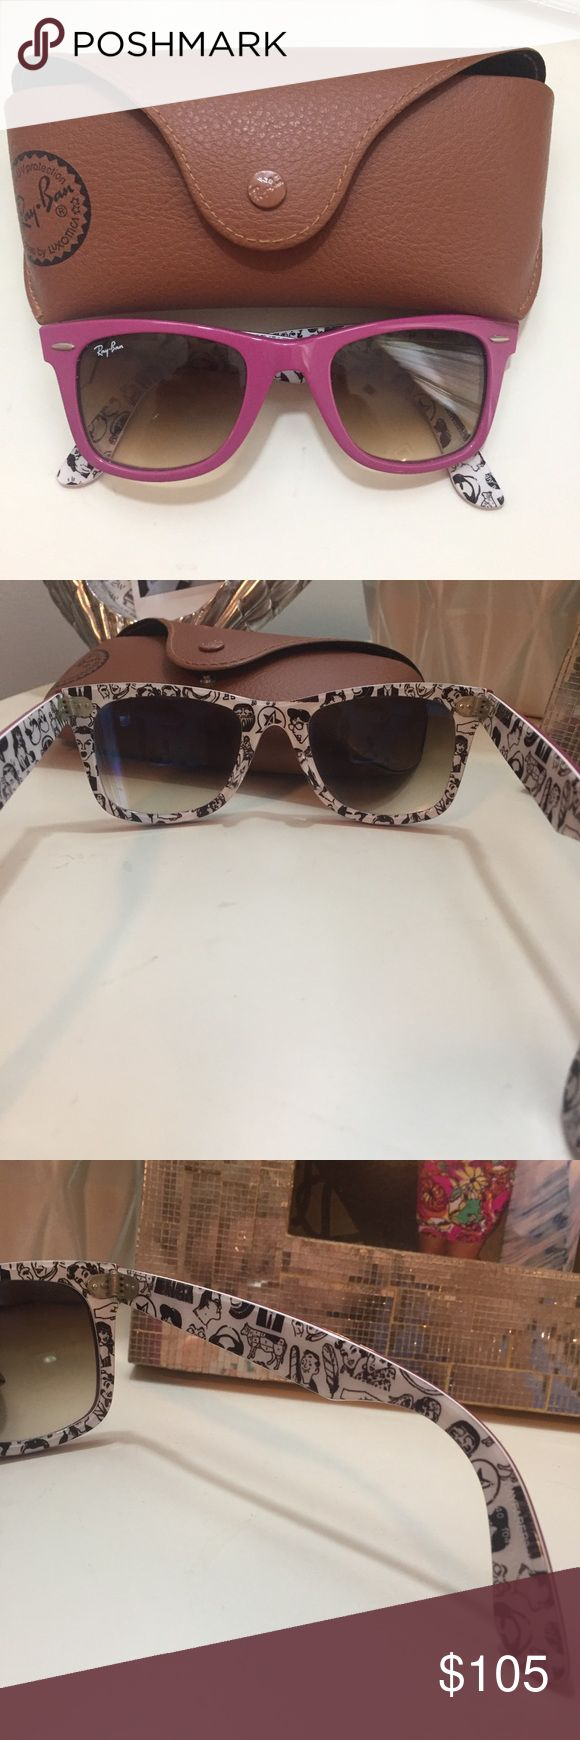 RAY-BAN Pink Wayfarer Sunglasses Rare, pink wayfarer Ray Bans with the comic inside detail. In perfect condition and comes with the Ray Ban Sunglasses Case! Ray-Ban Accessories Sunglasses